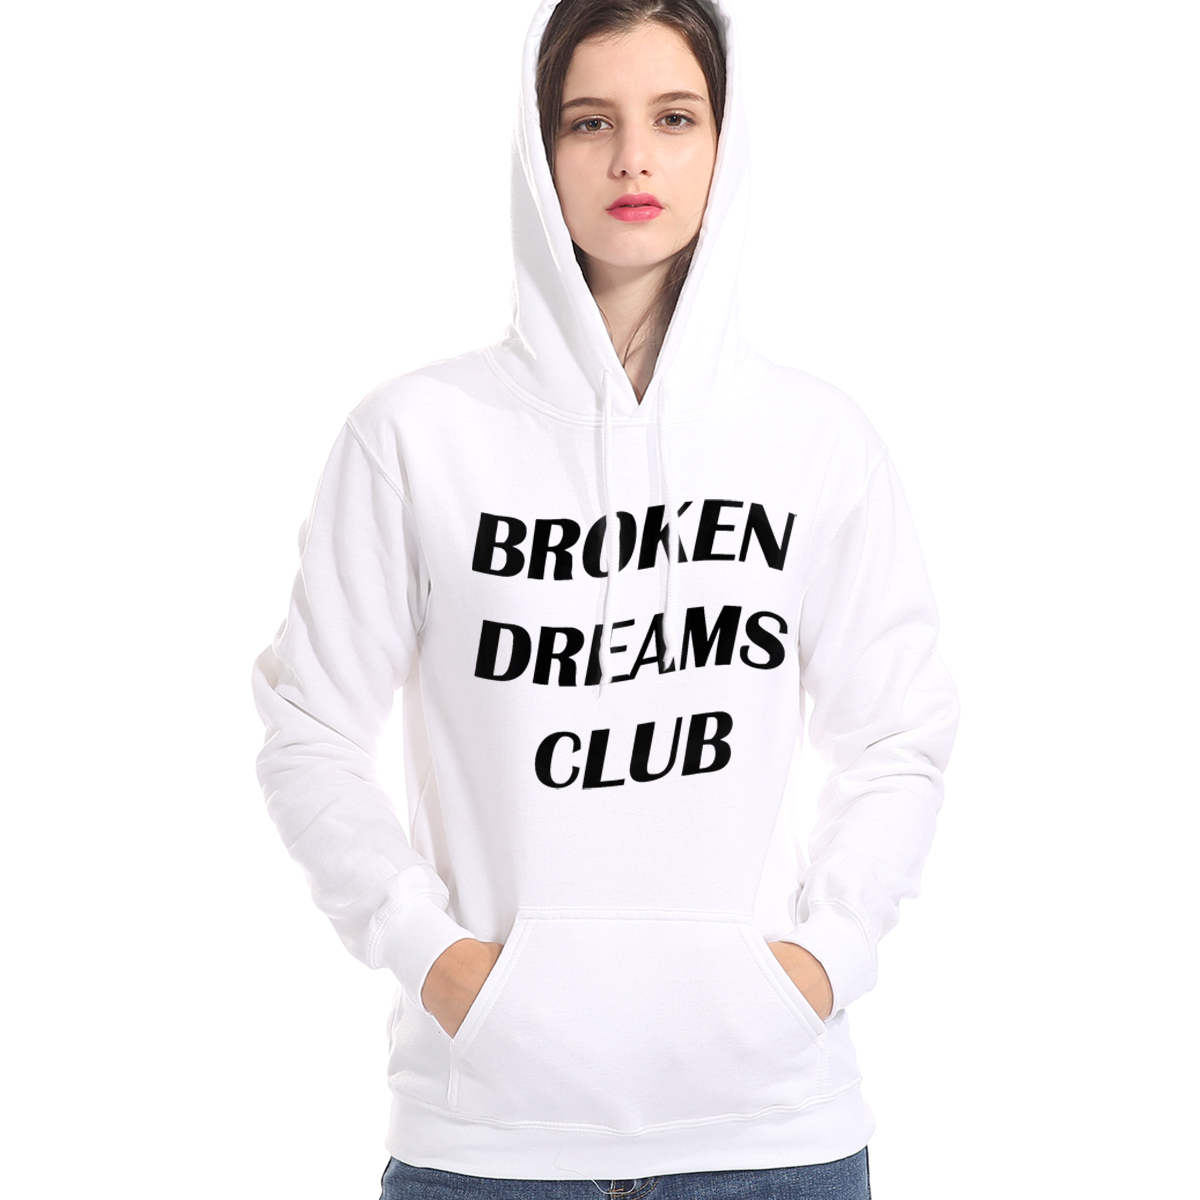 Autumn Winter Fleece Pullover 2019 Fashion Streetwear Hoody Broken Dreams Club Print Female Sweatshirt Harajuku Women's Hoodies